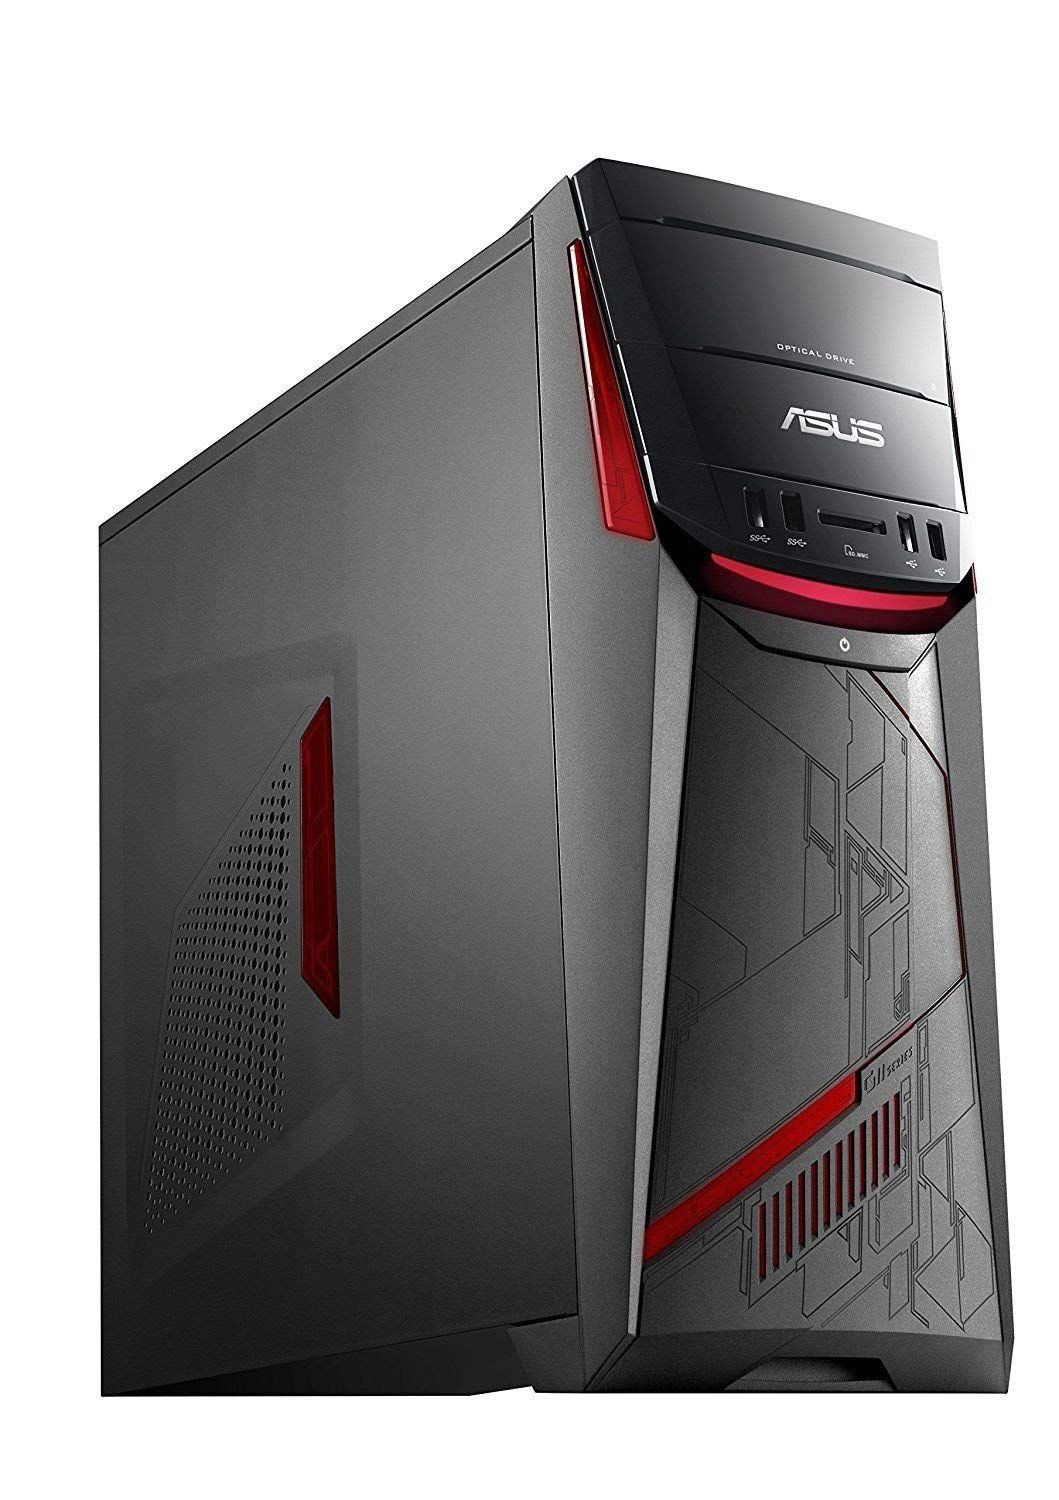 2017 Newest Asus G11 Premium Gaming Desktop Computer